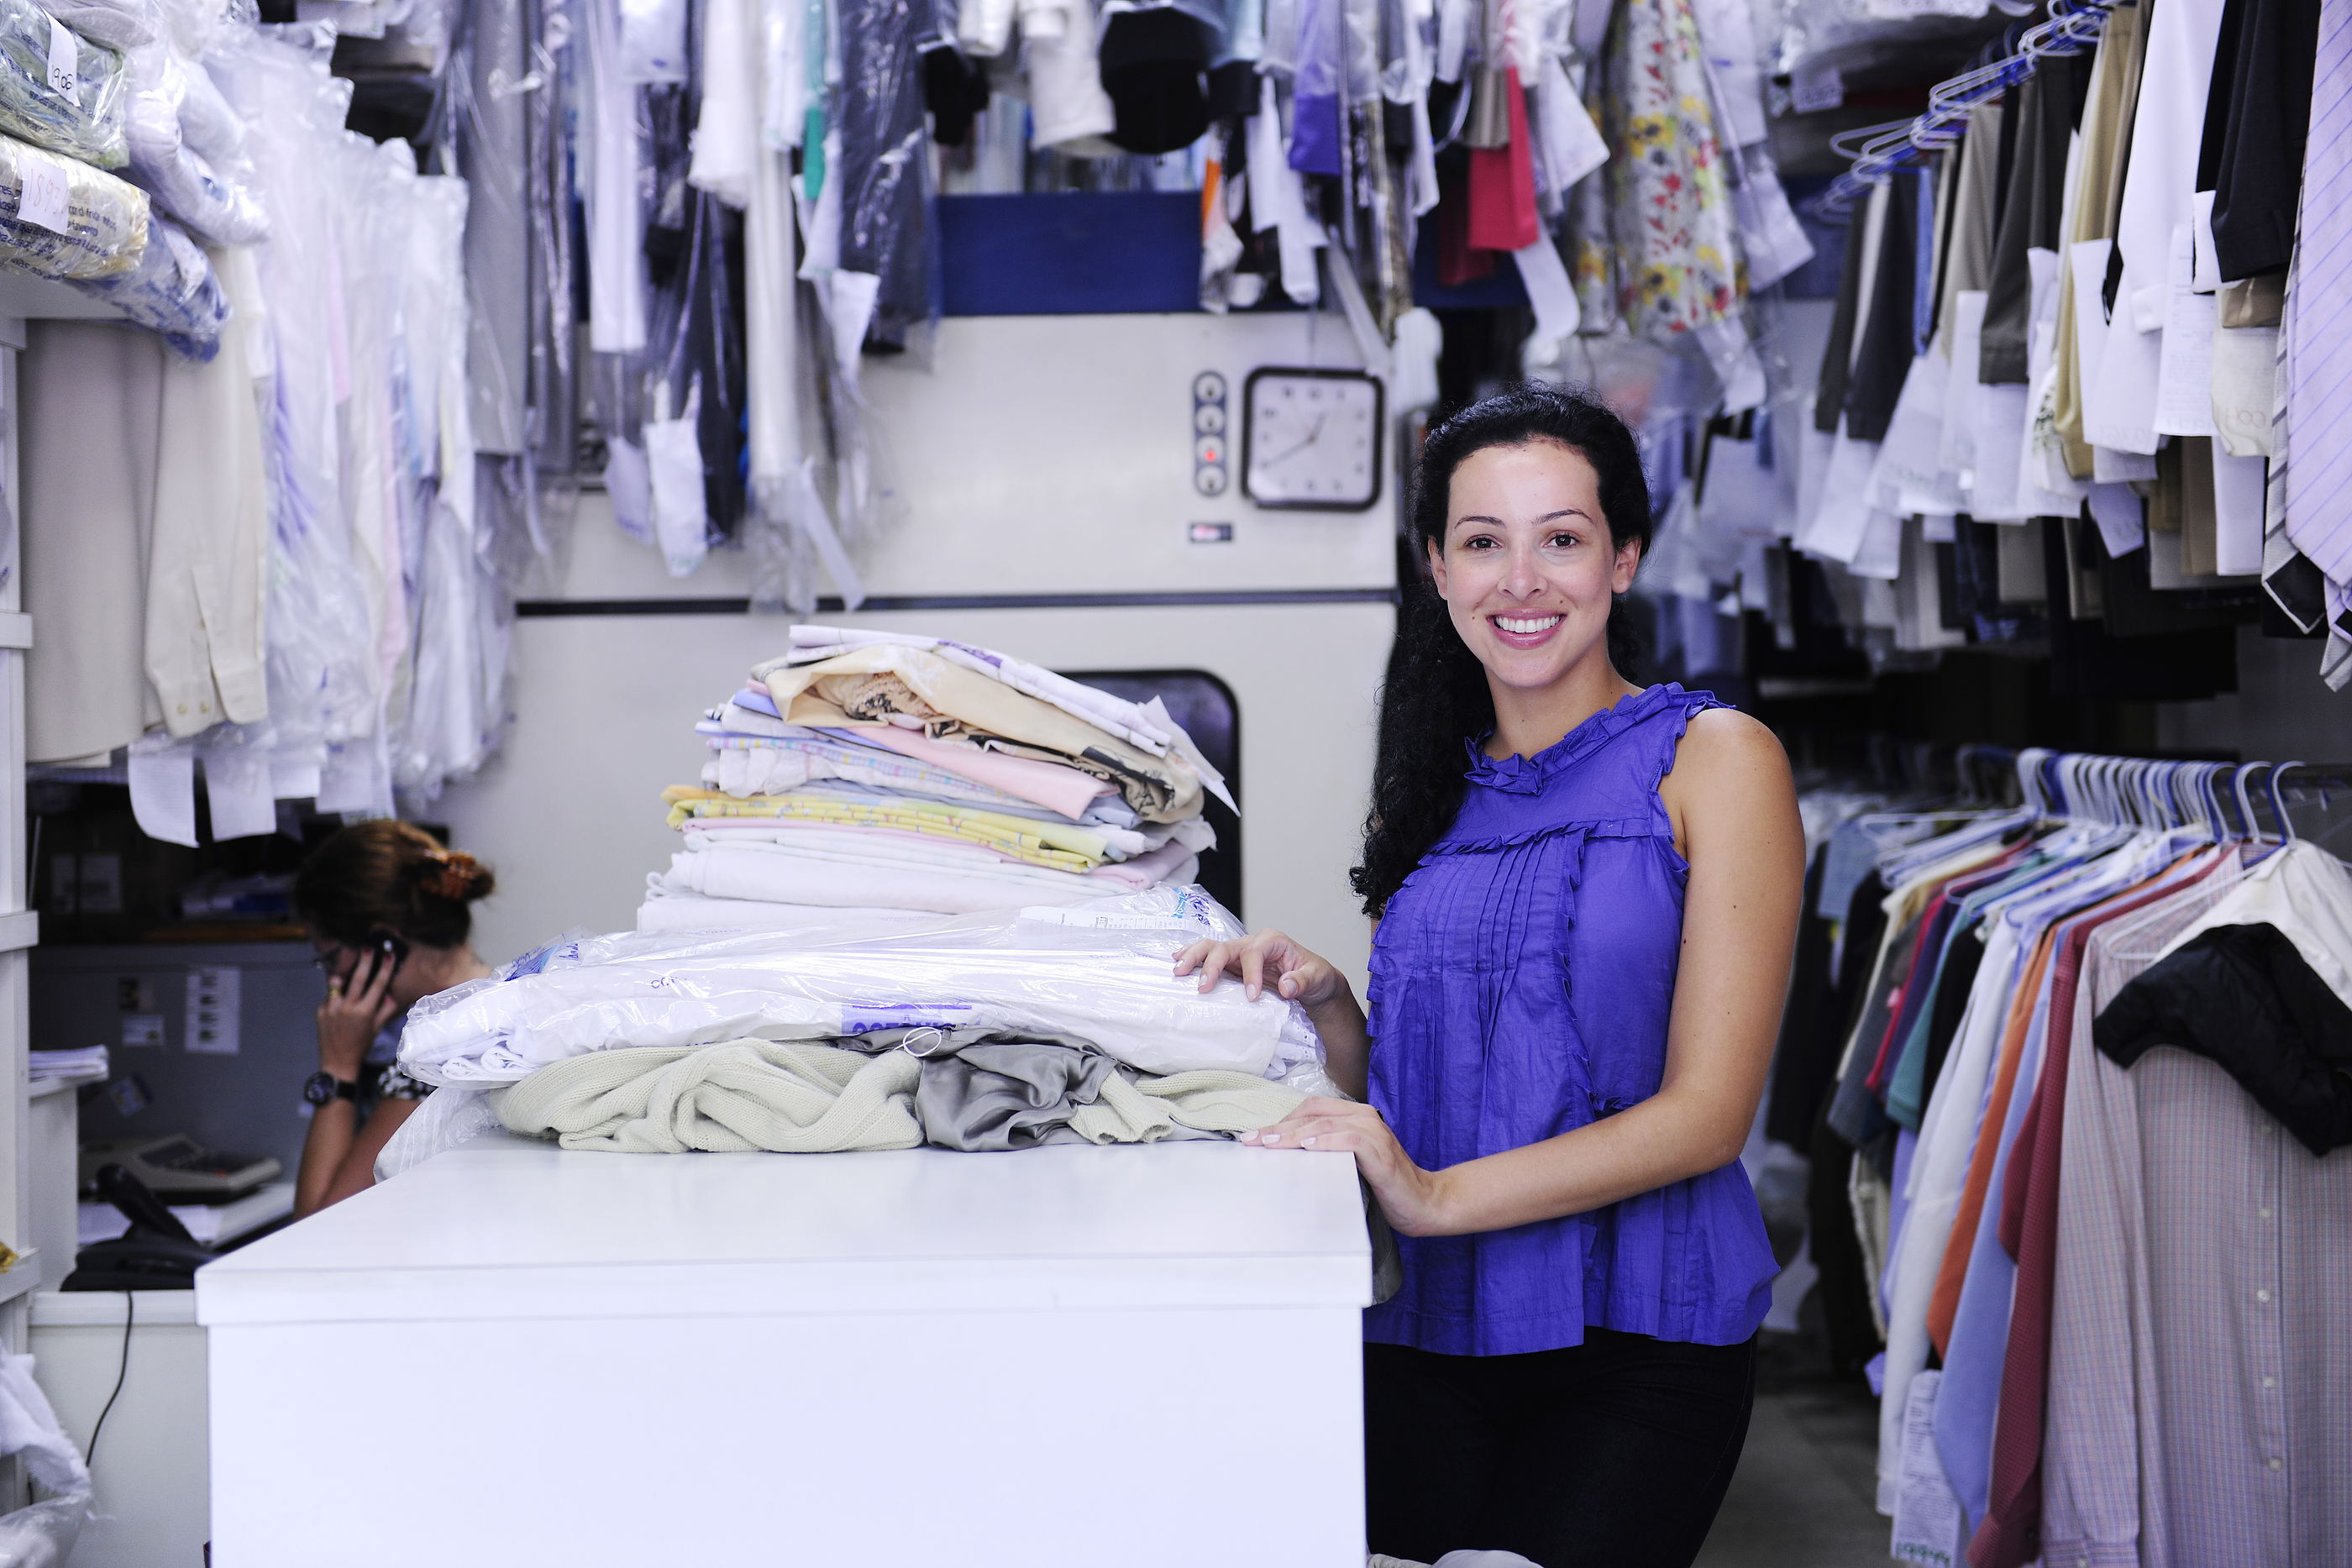 Image of Dry Cleaner Laundry with employee